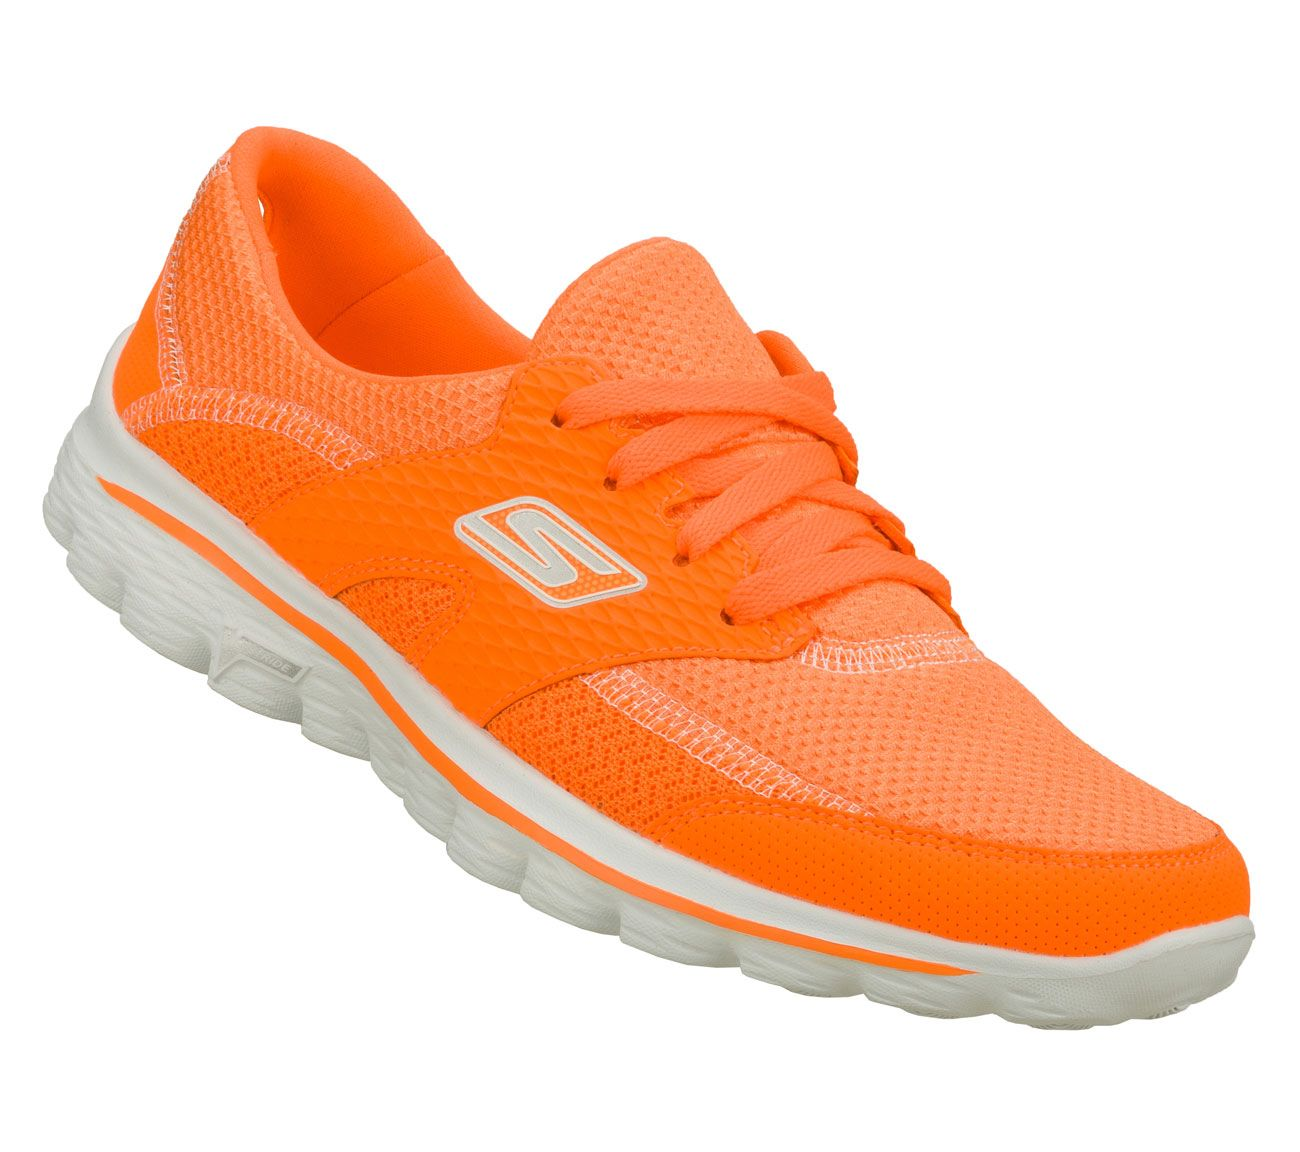 Pair of orange Skechers shoes - Women's